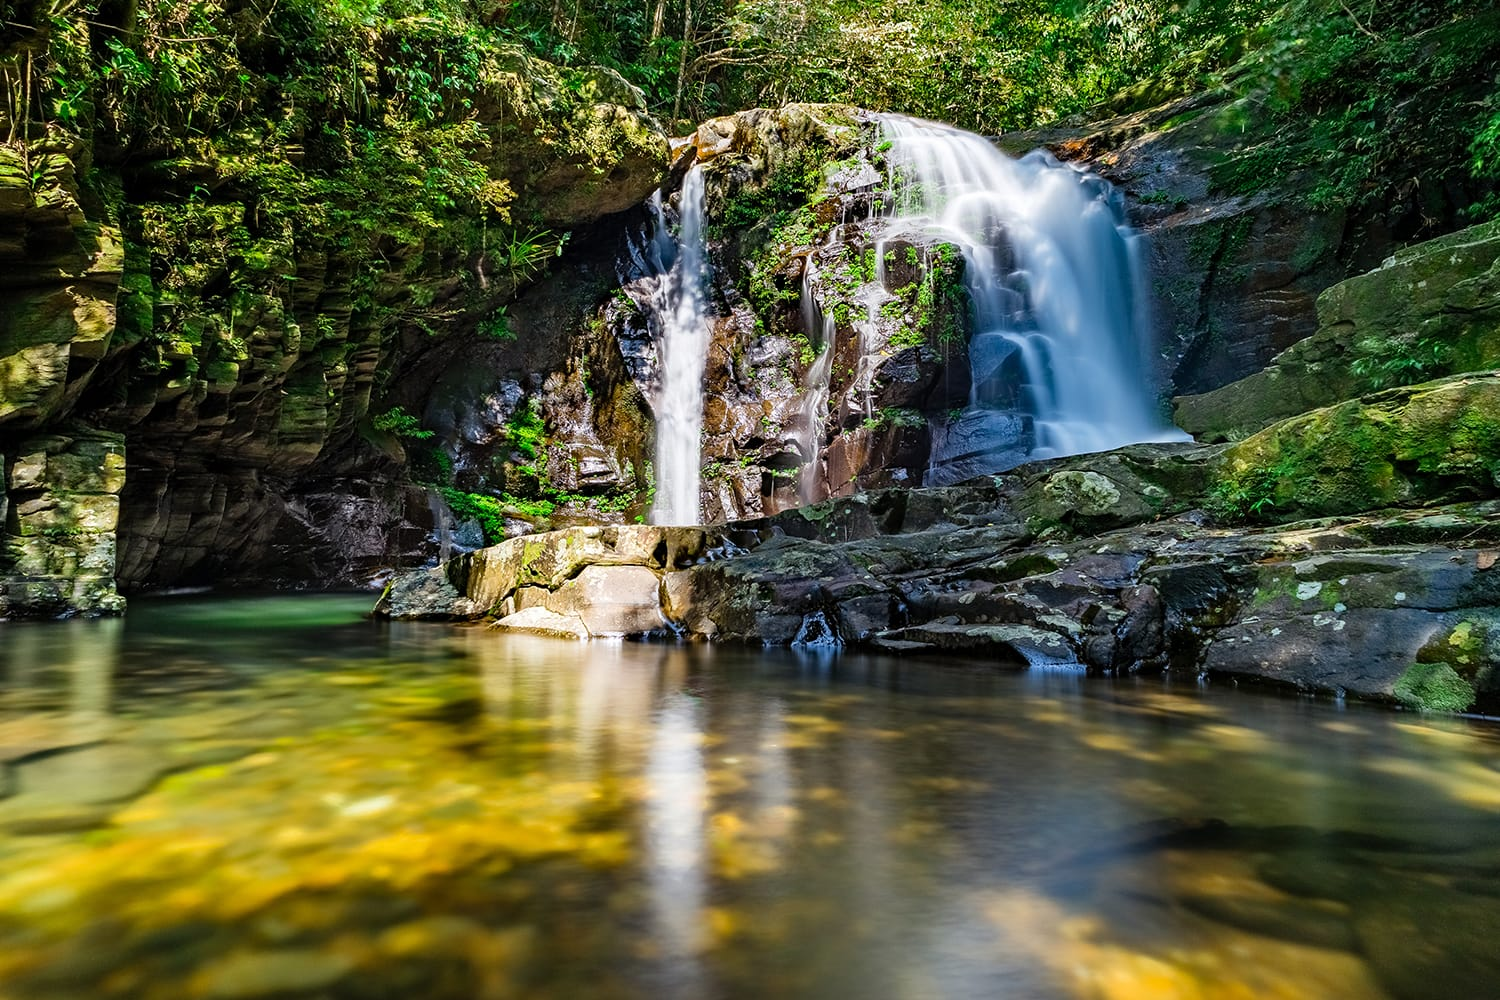 Ngu Ho Waterfall in Bach Ma National Park, Vietnam